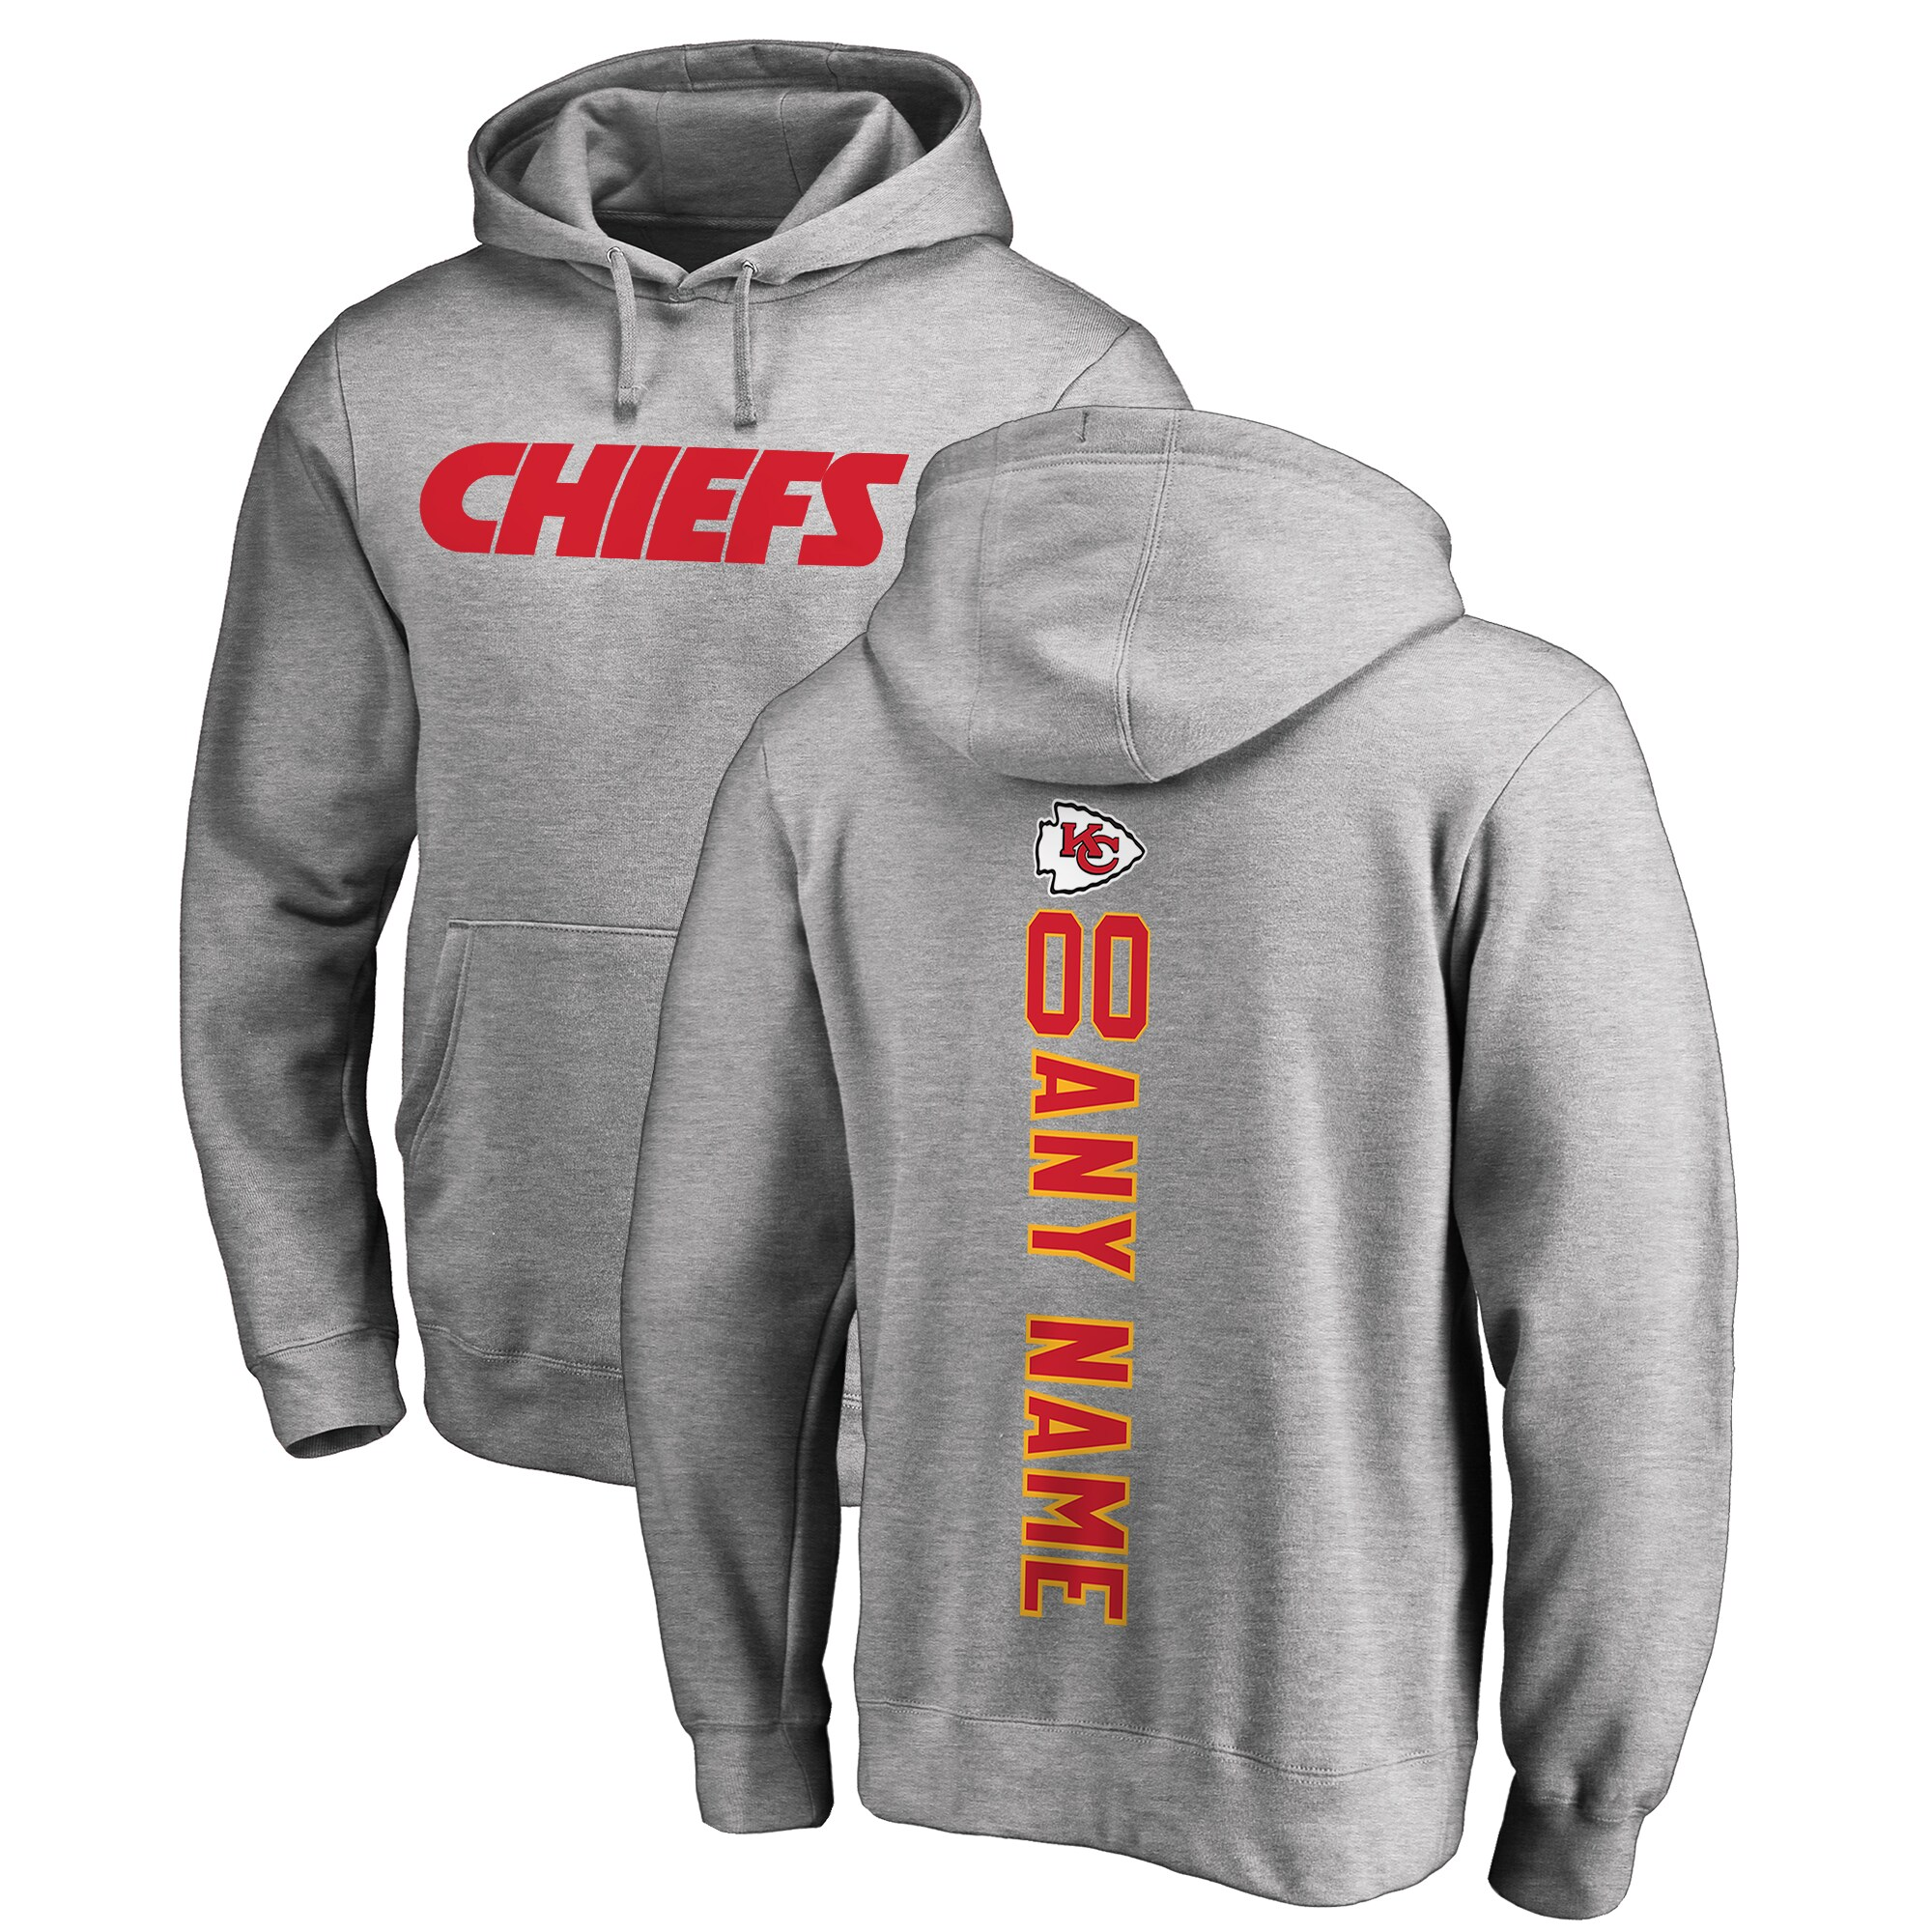 Kansas City Chiefs NFL Pro Line by Fanatics Branded Personalized Playmaker Pullover Hoodie - Heather Gray